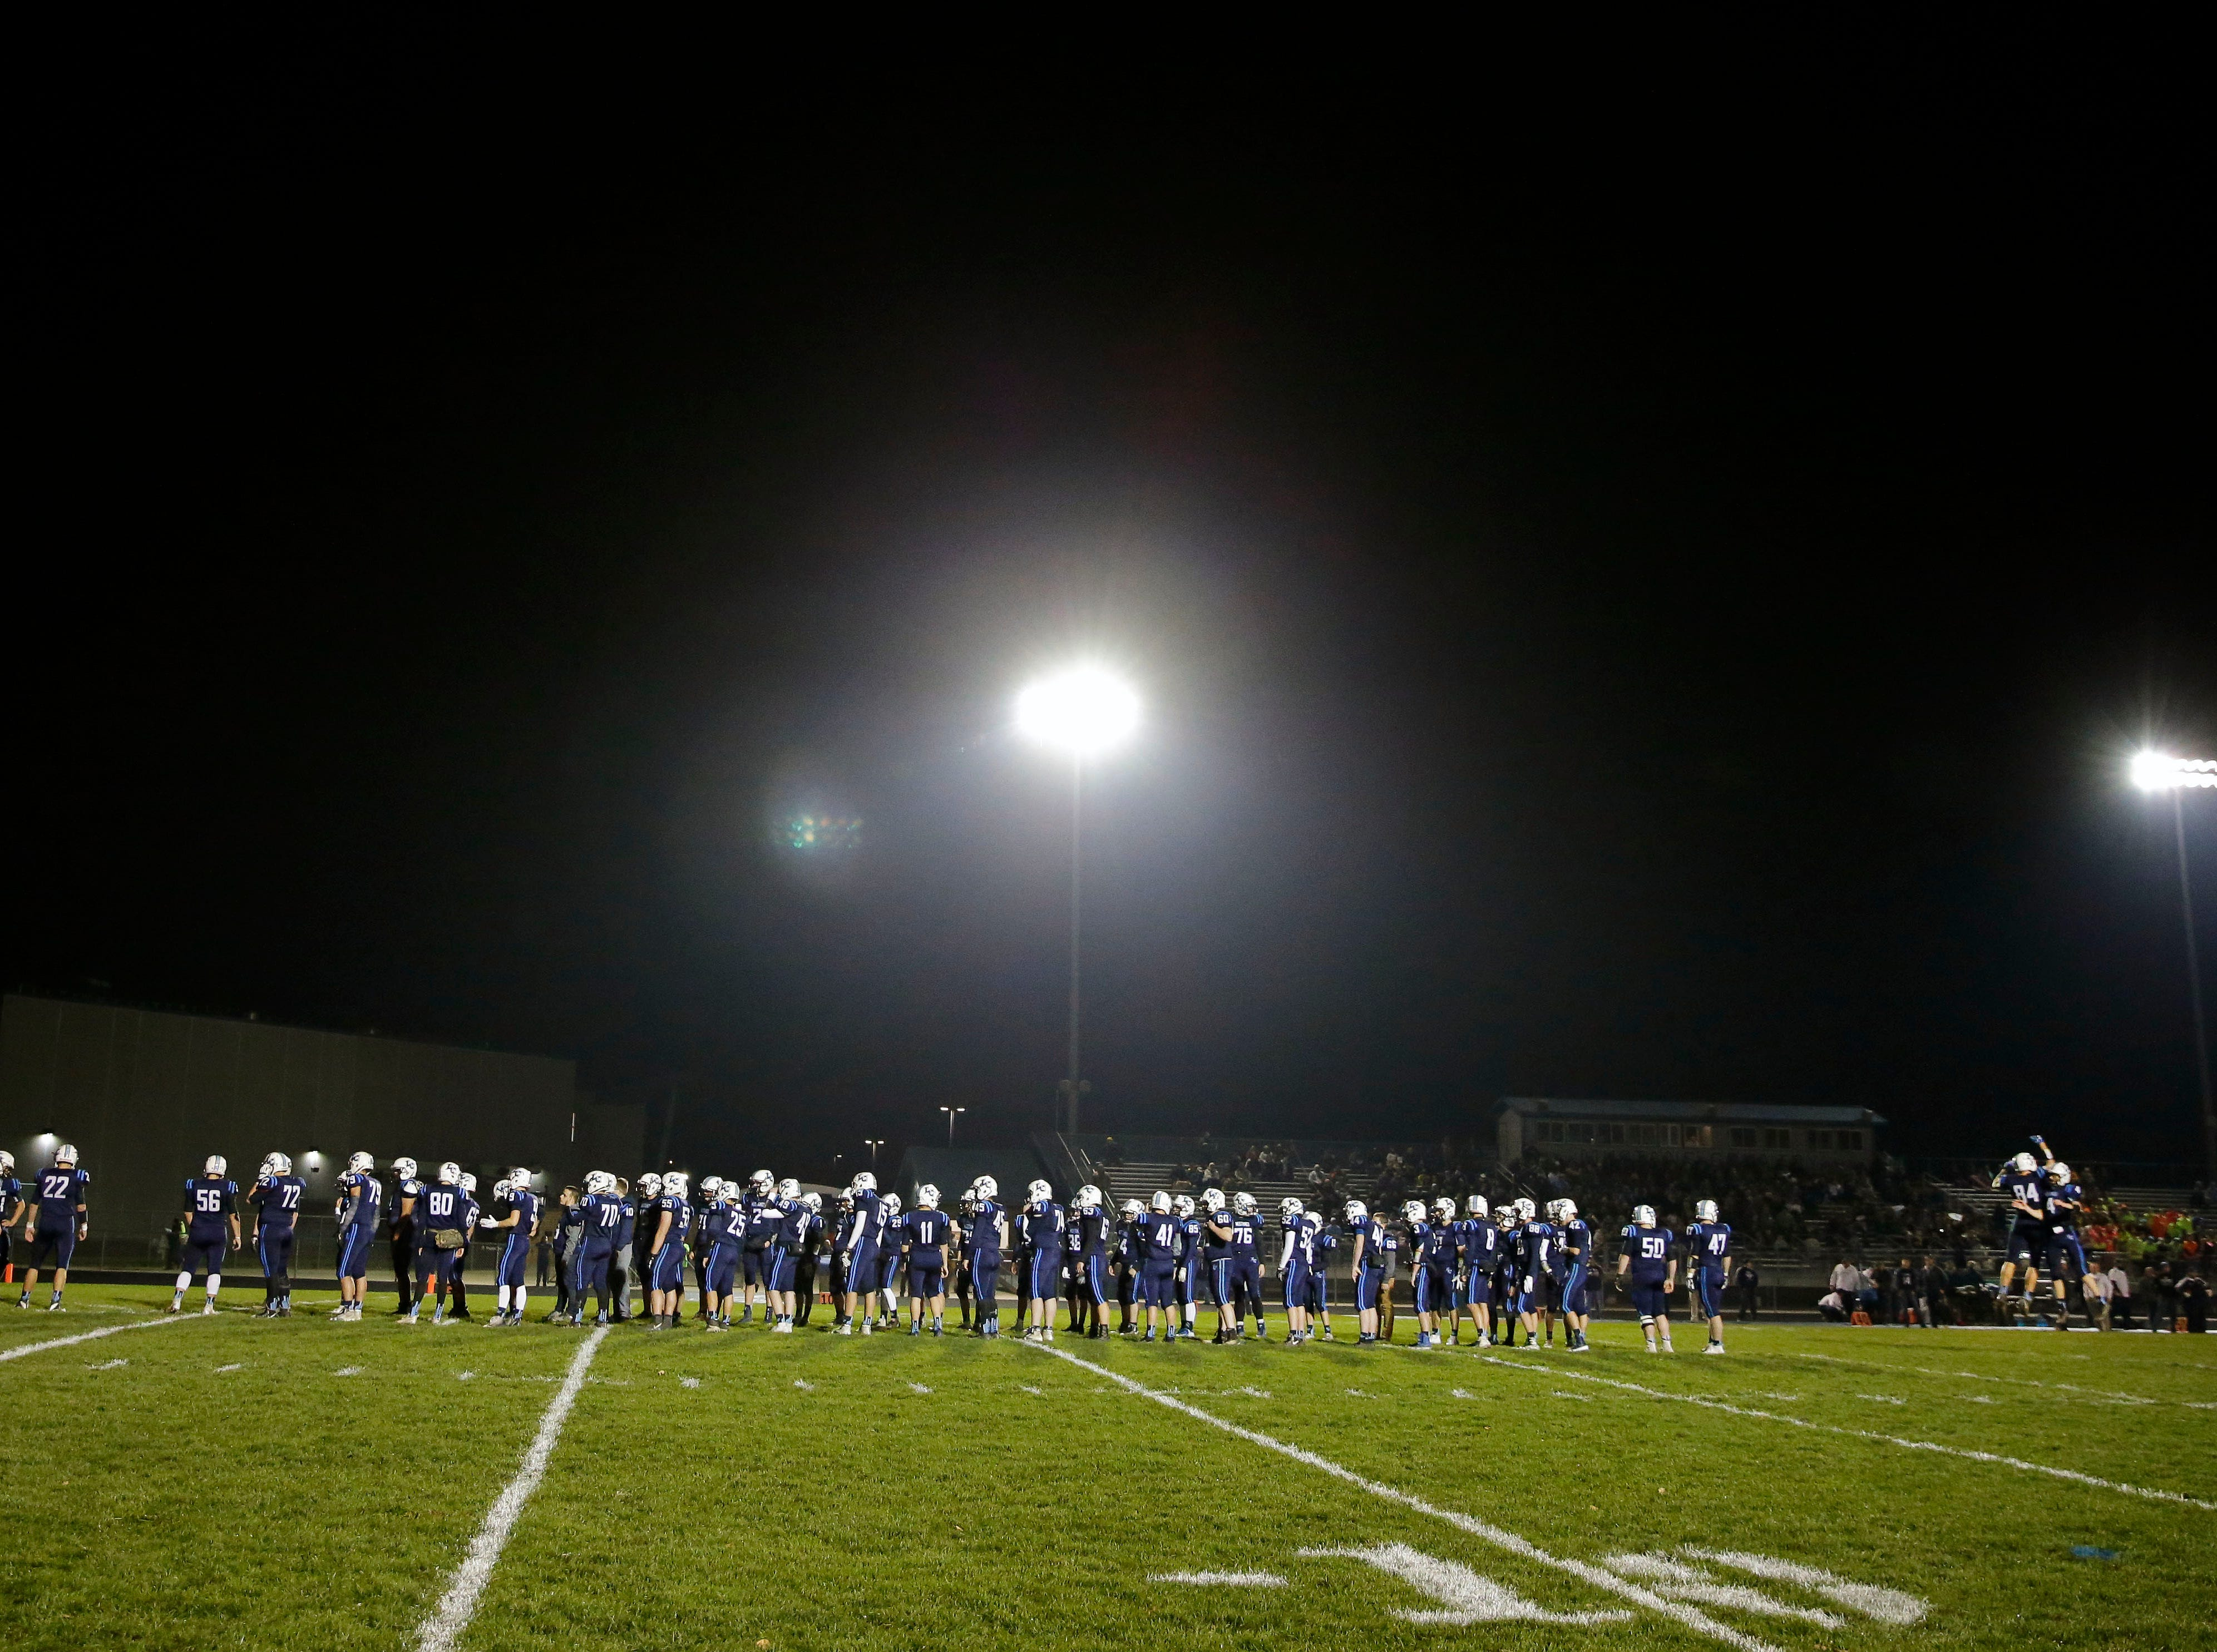 Little Chute players take the field against Chilton in a WIAA Division 4 second round football playoff game Friday, October 26, 2018, at Little Chute High School in Little Chute, Wis.Ron Page/USA TODAY NETWORK-Wisconsin